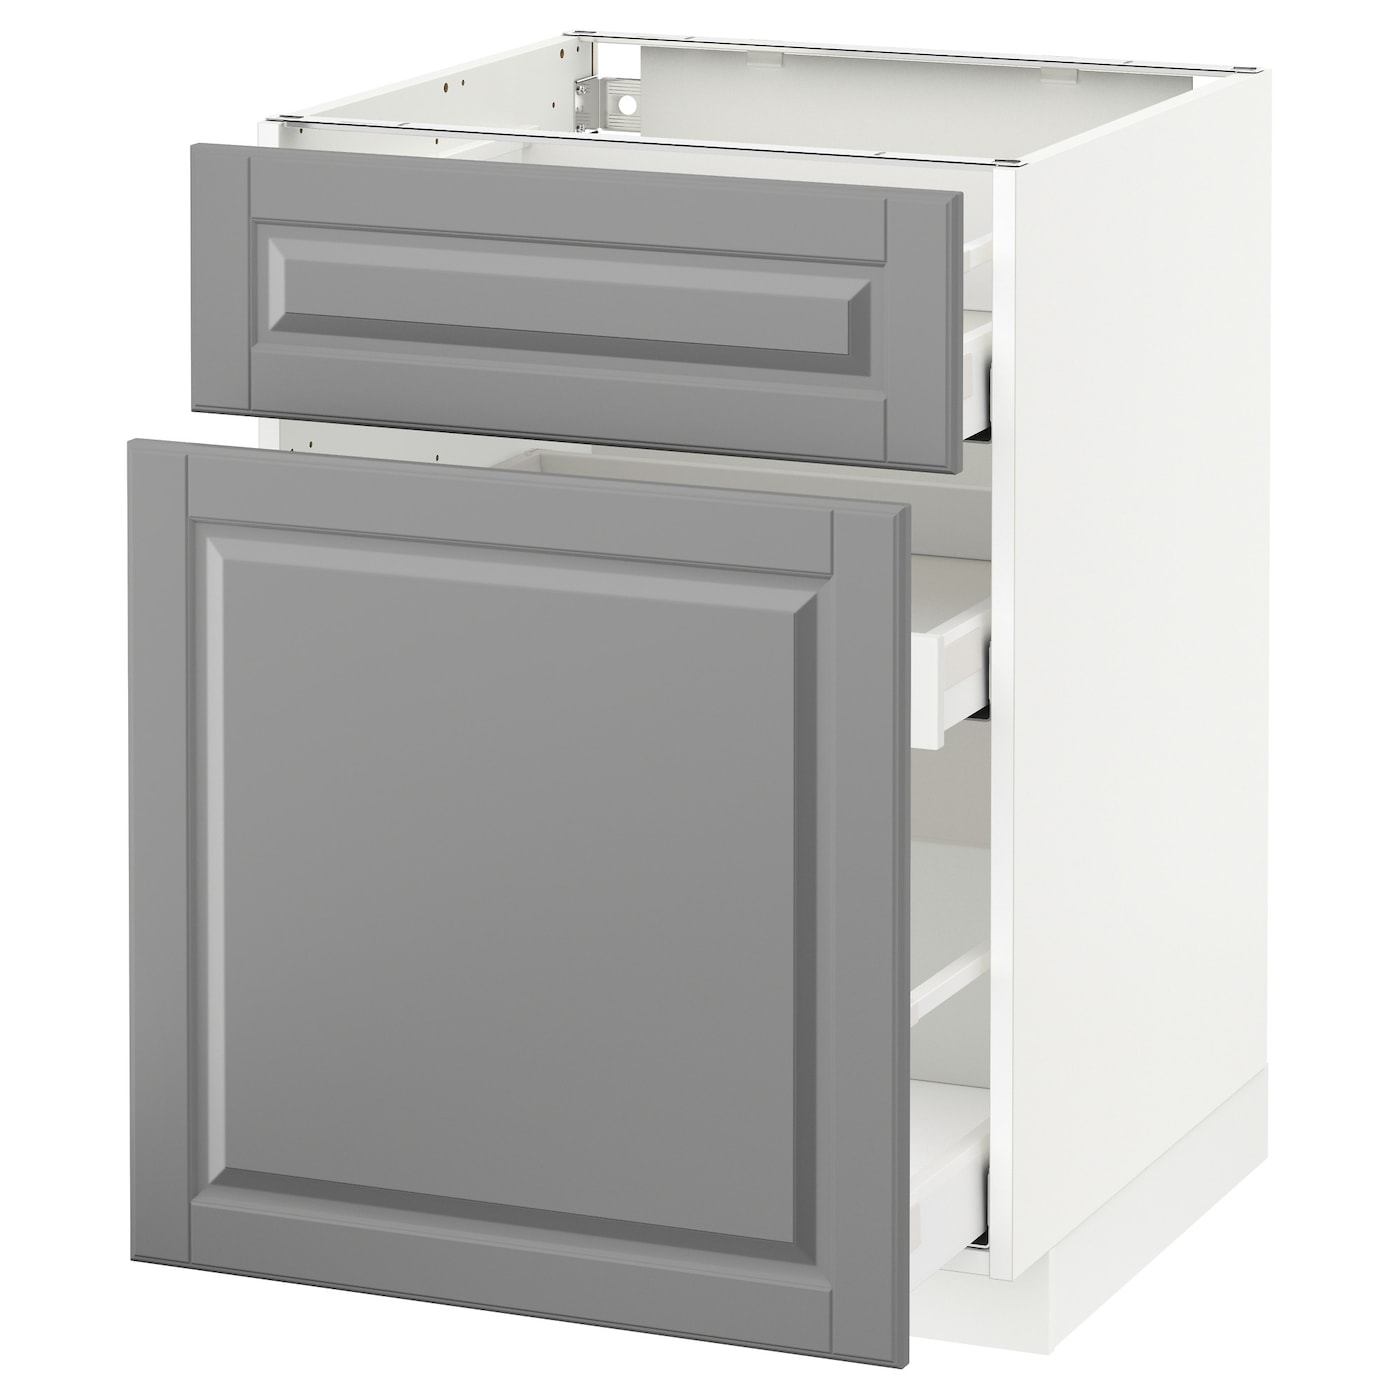 metod maximera base cabinet p out storage drawer white bodbyn grey 60 x 60 cm ikea. Black Bedroom Furniture Sets. Home Design Ideas